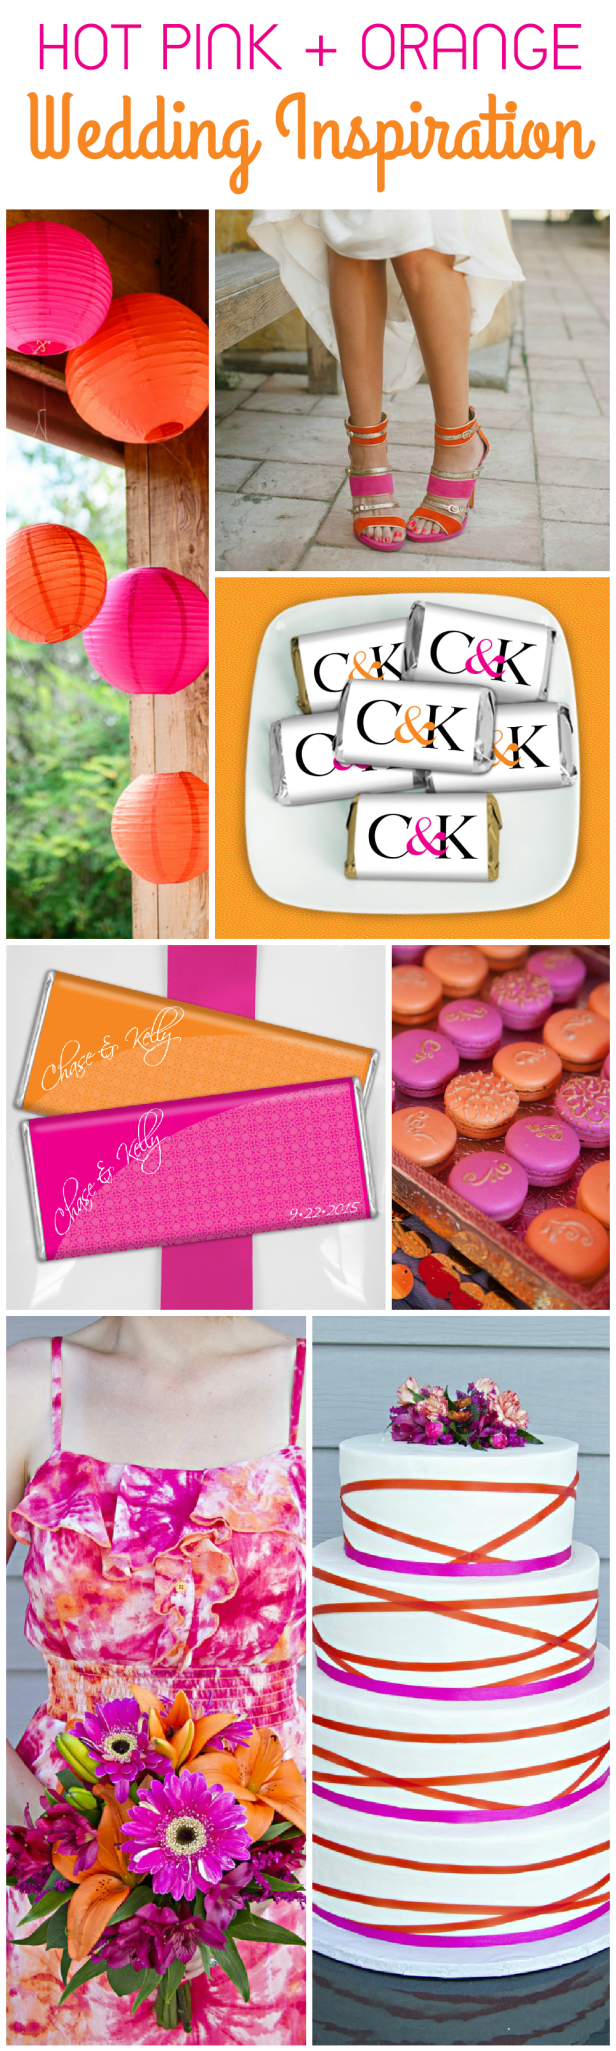 Hot Pink and Orange Wedding Ideas